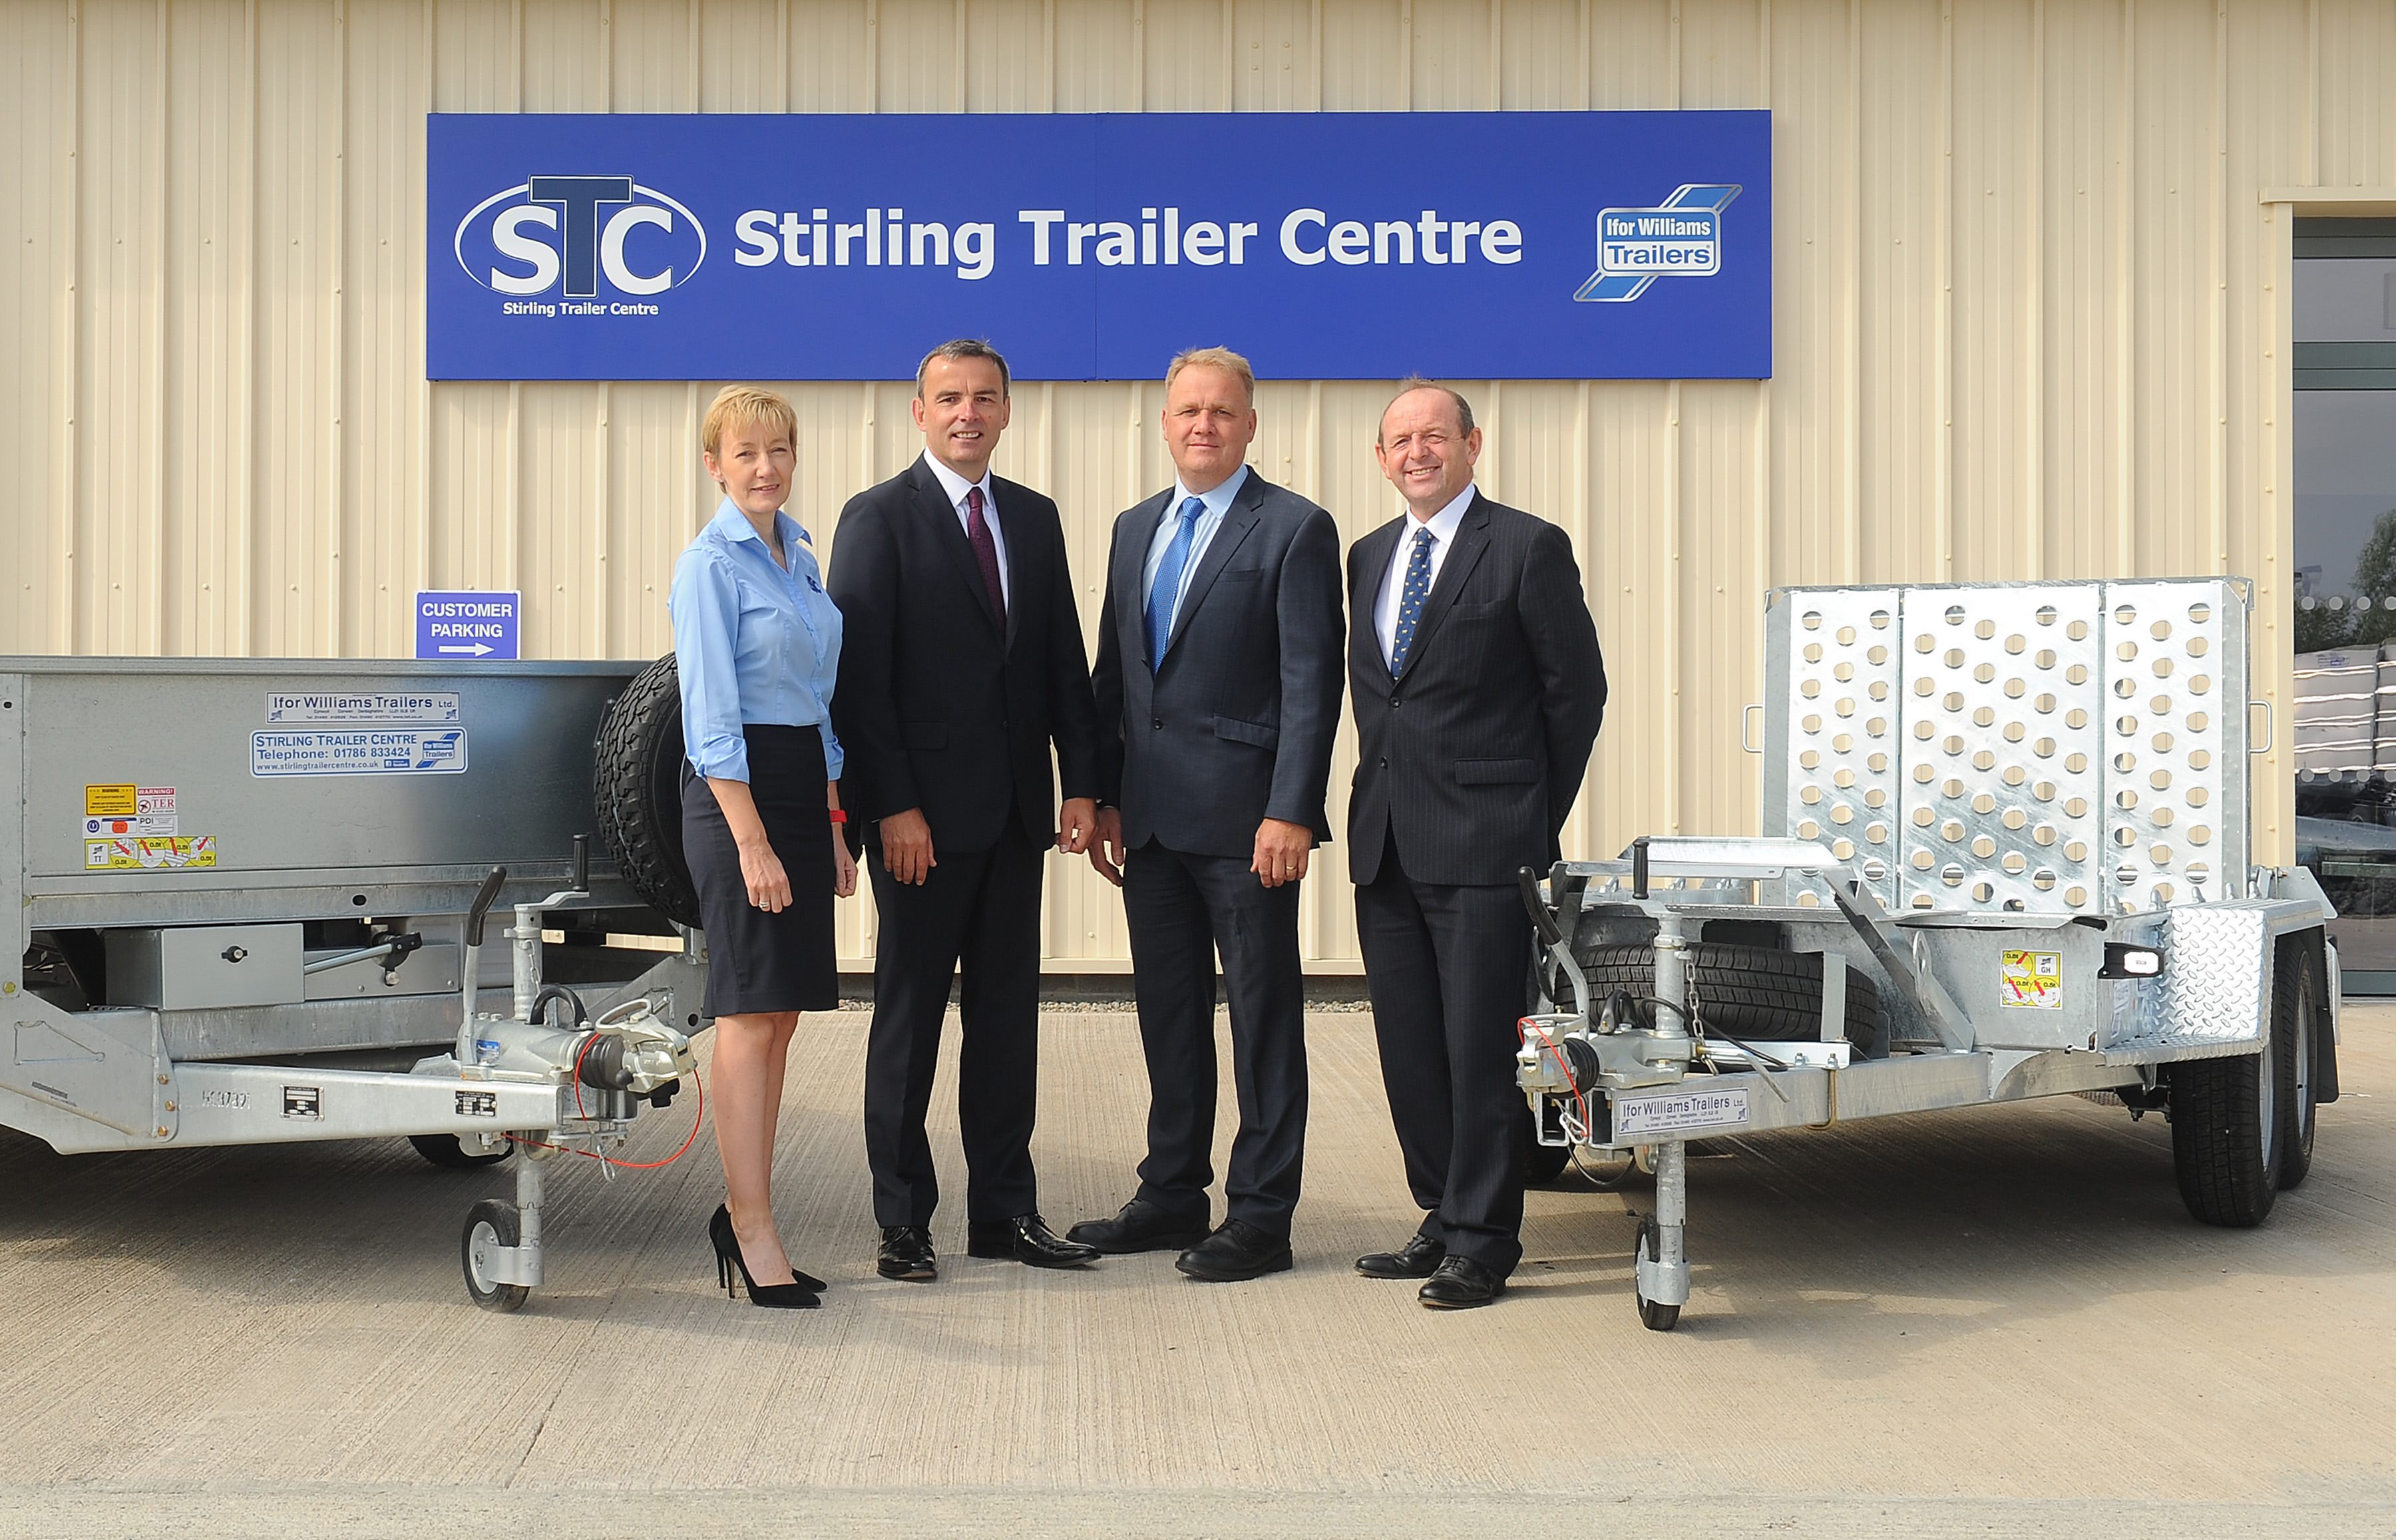 (l-r) Jayne Gray, co-owner of Stirling Trailer Centre: Neil McLean, Chairman of United Auctions, Robin Gray, co-owner of Stirling Trailer Centre and George Purves, Managing Director of United Auctions.